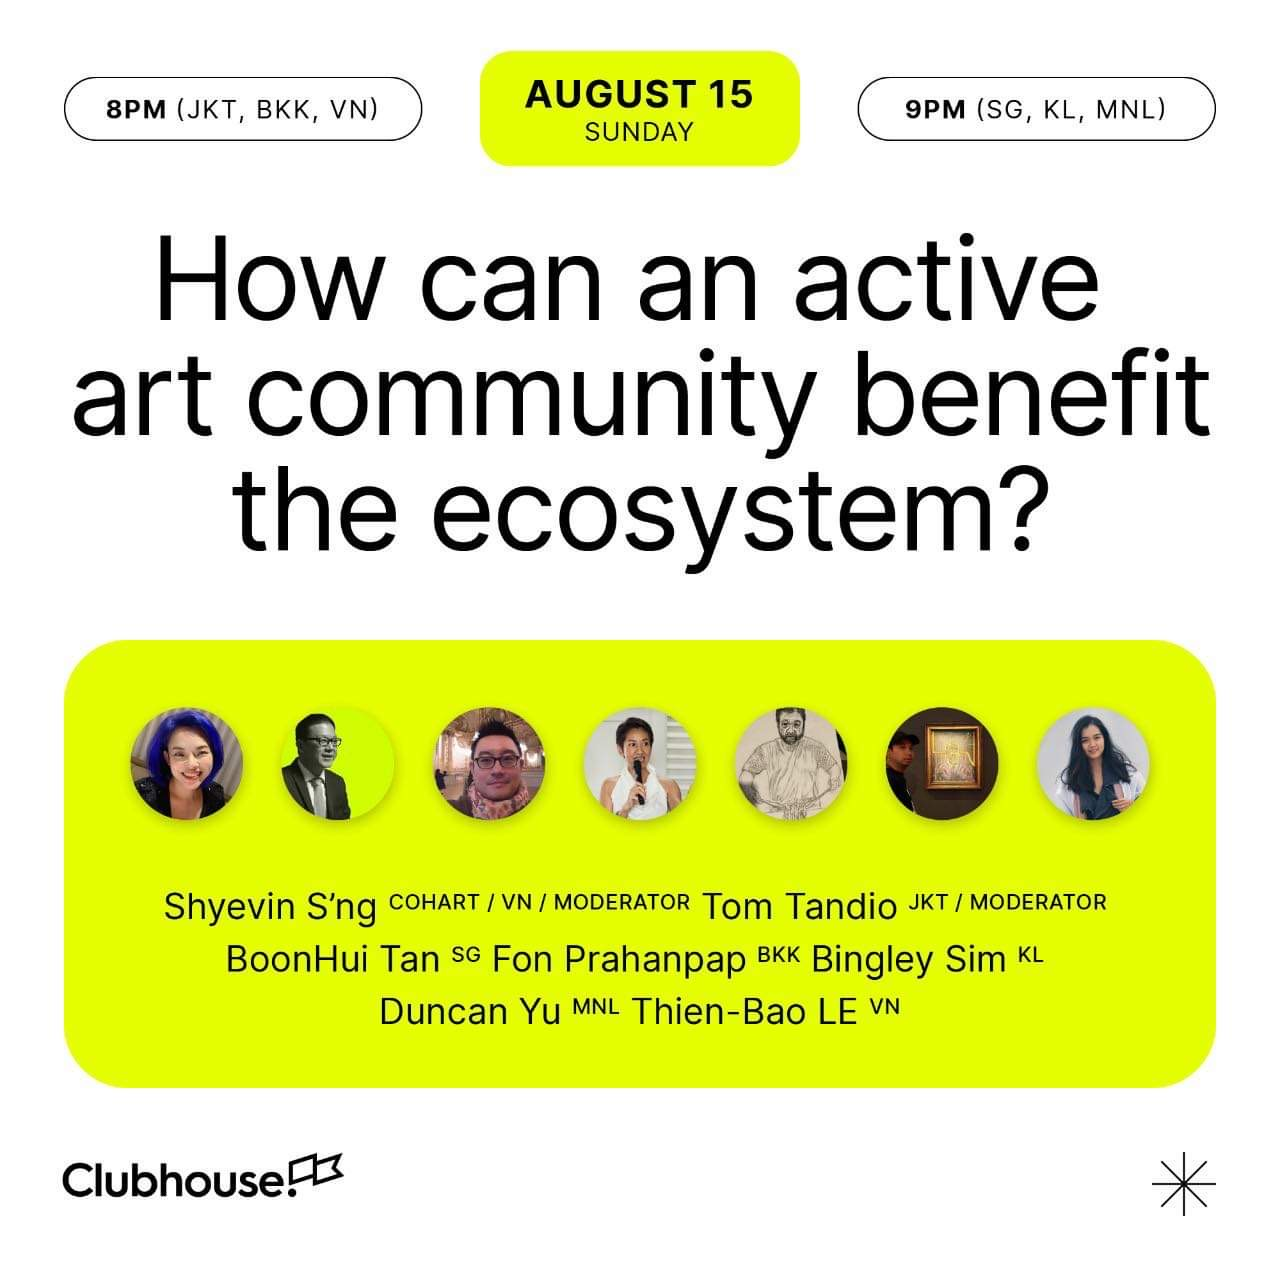 How can an active art community benefit the ecosystem?